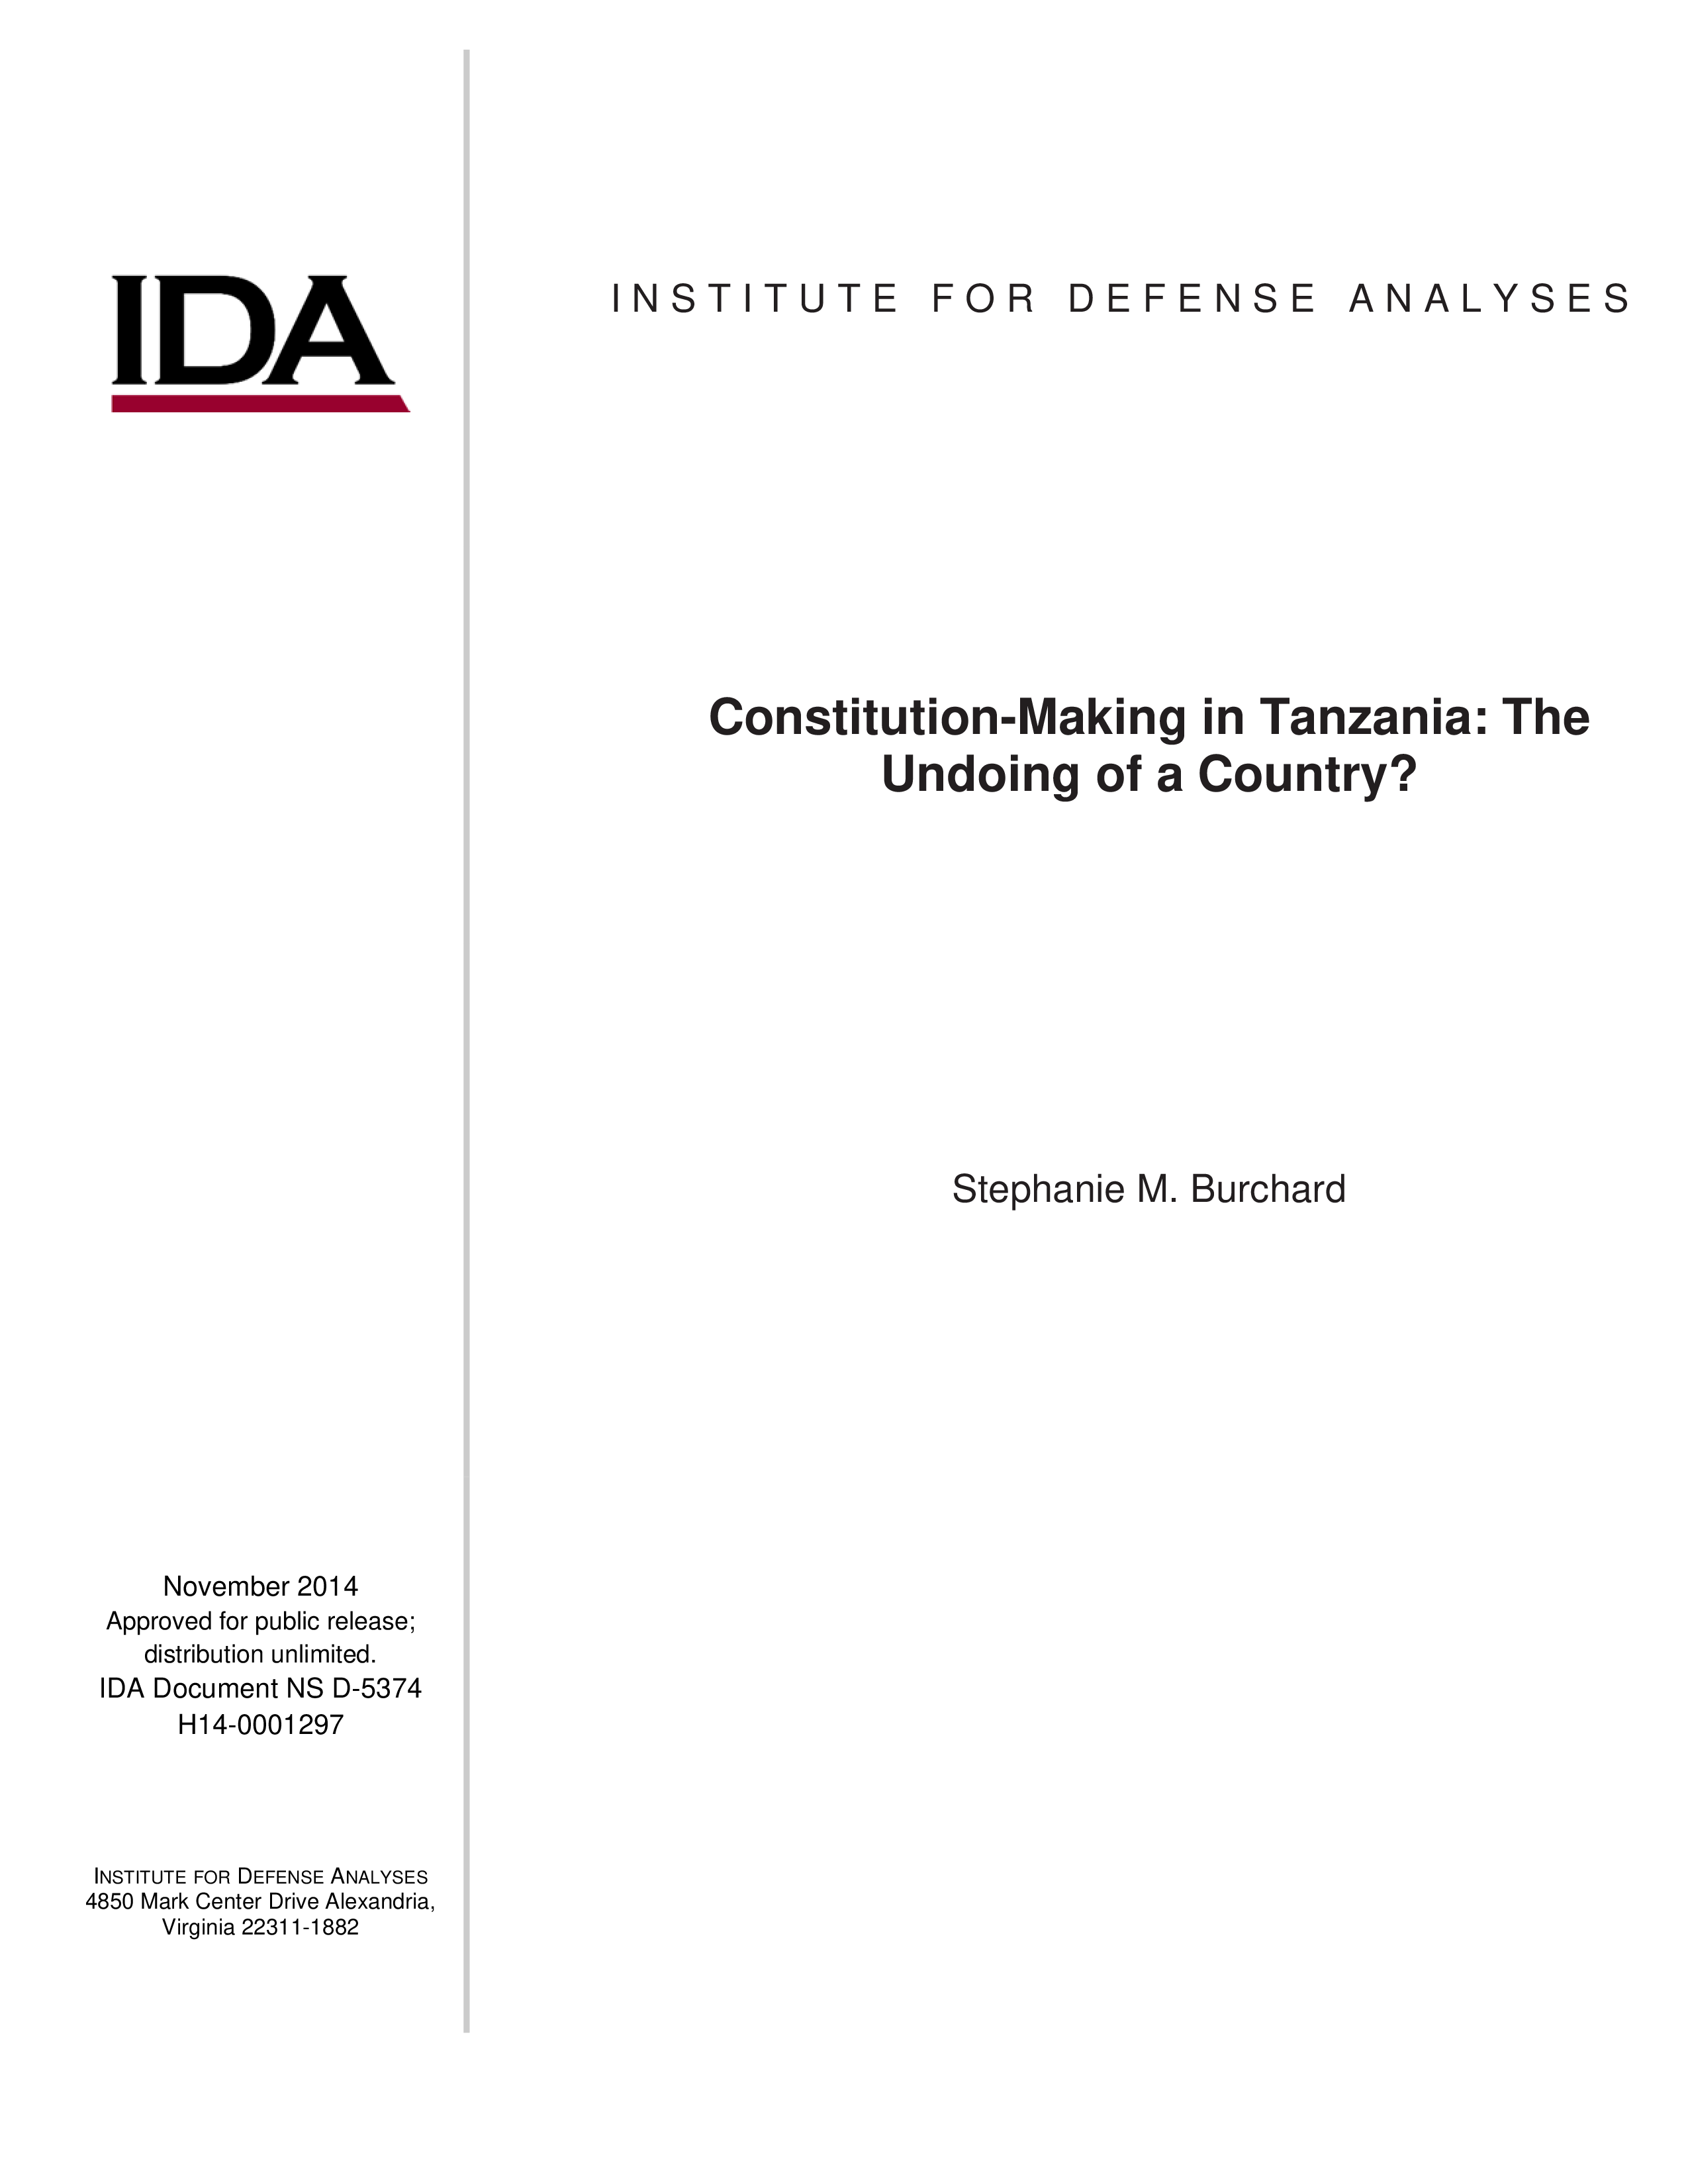 Constitution-Making in Tanzania: The Undoing of a Country?